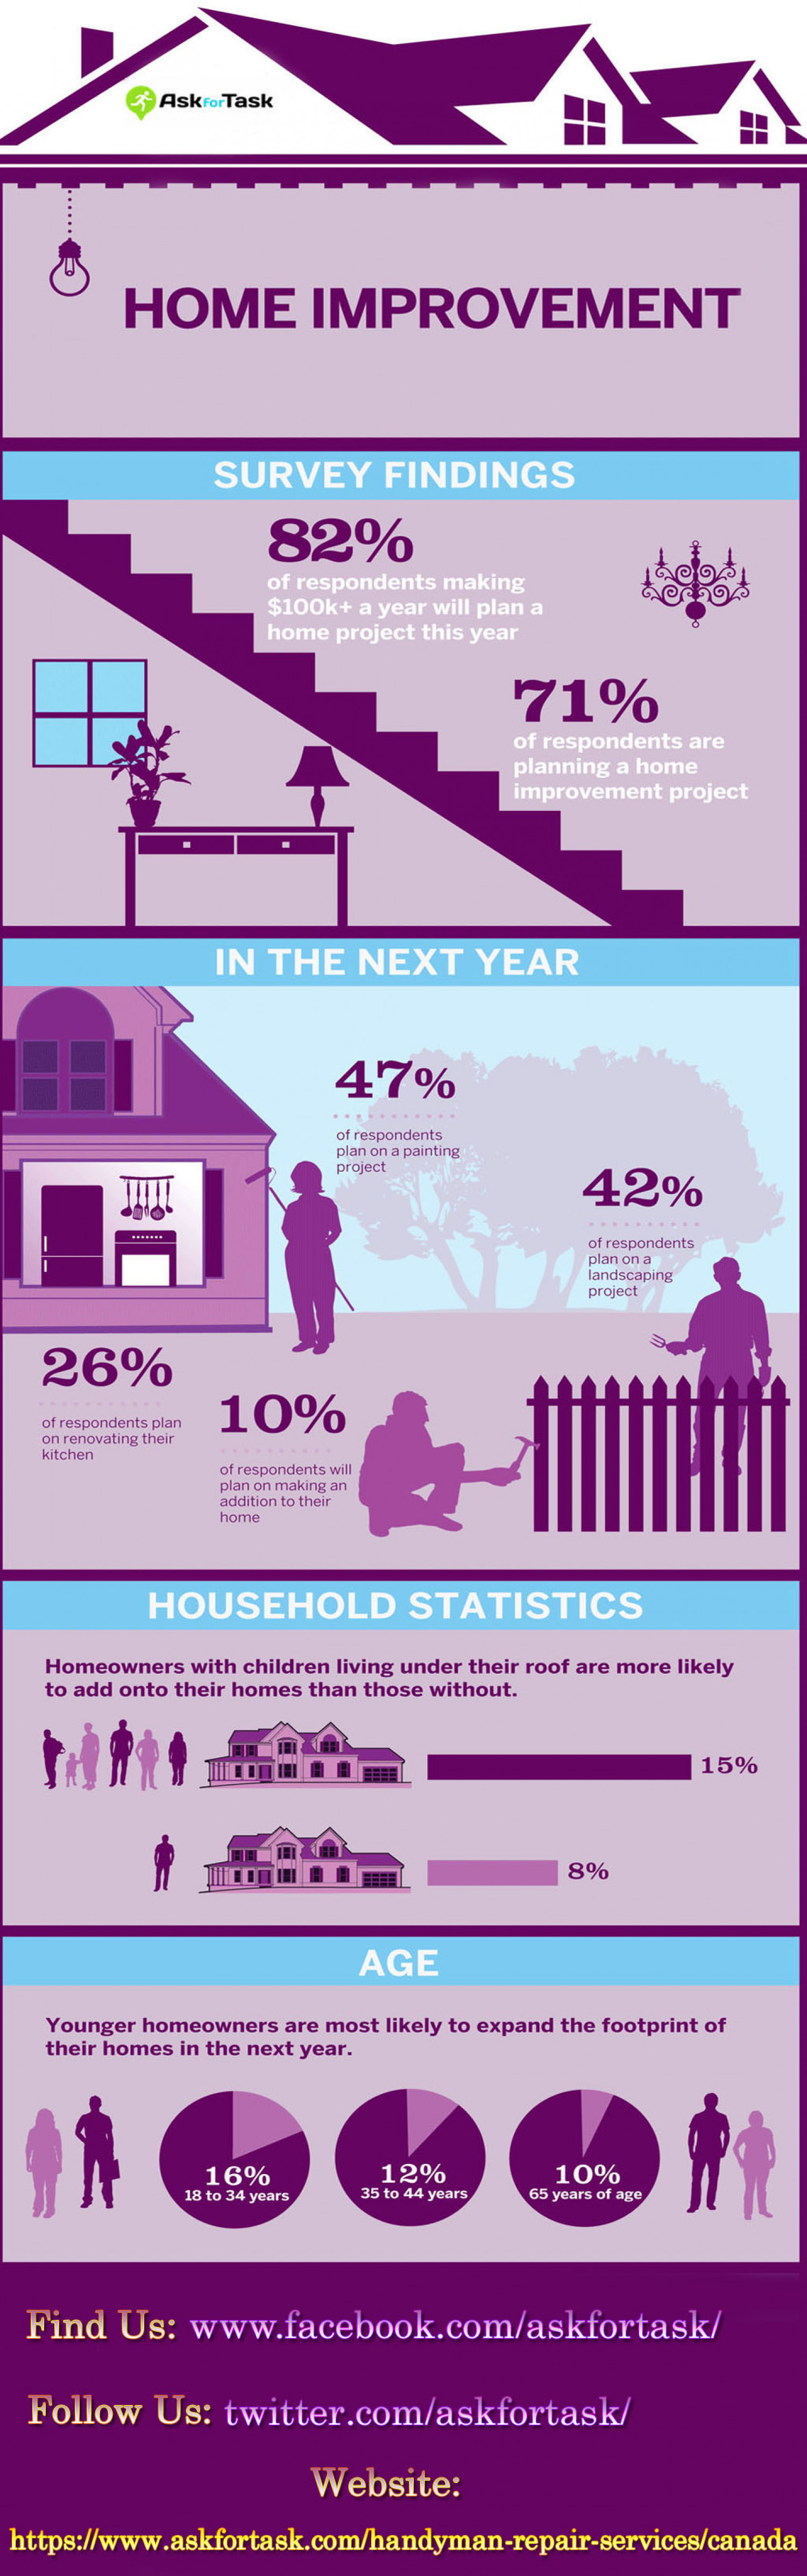 Askfortask Home Improvement Services in Canada Infographic